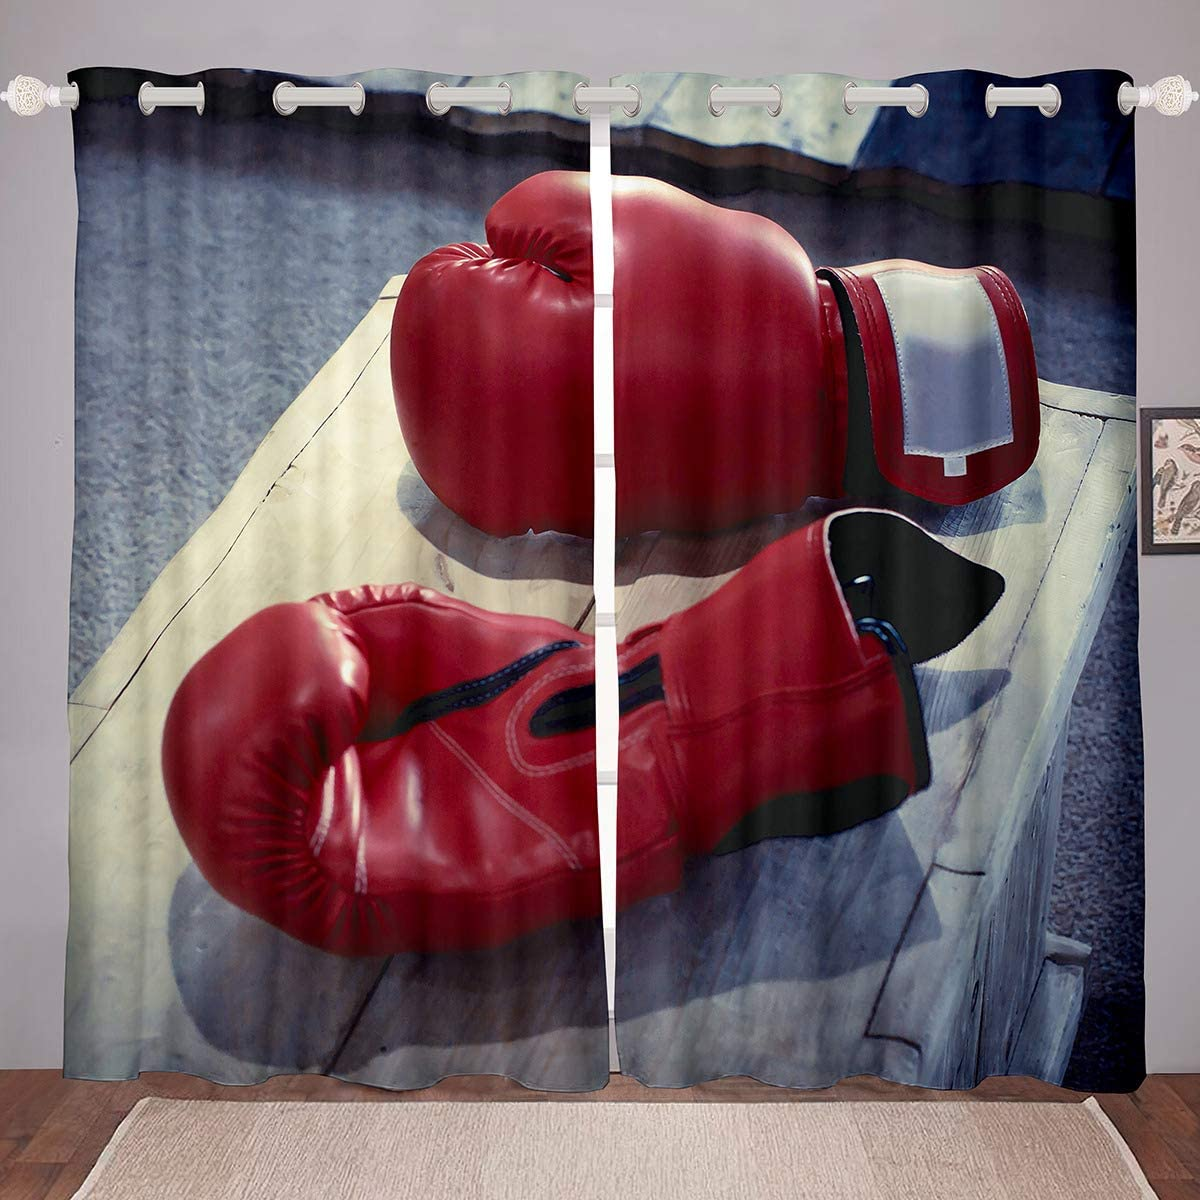 Castle Fairy Boxing Gloves Red Window Curtains for Girls Boys Window Curtains Sport Brown Yellow Darkening Curtains for Bedroom Living Room Home Decor 2 Panel Set,84Wx84L inch